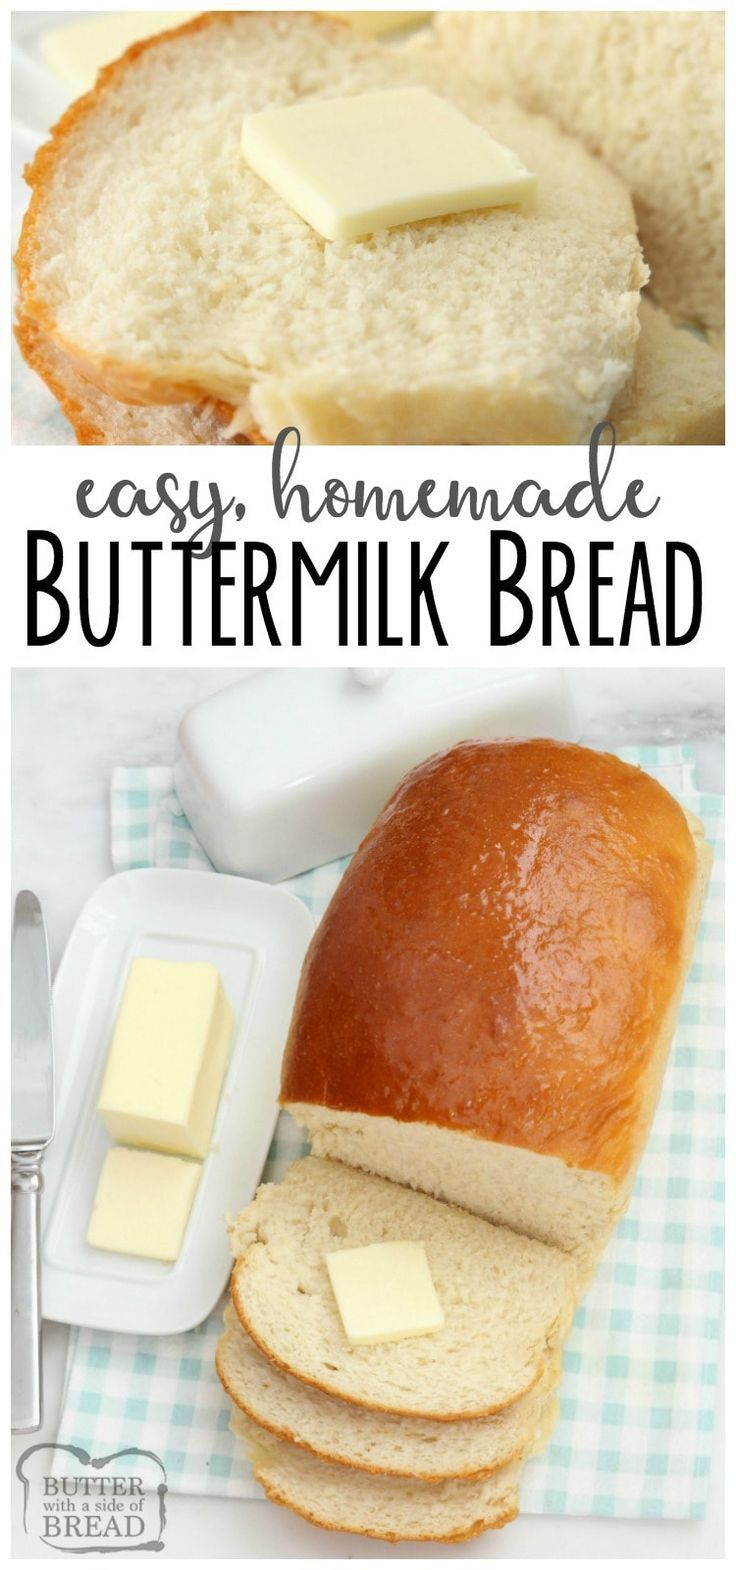 Buttermilk Bread baked fresh in your kitchen with this easy recipe! This recipe for homemade #bread is soft and has incredible flavor. YES it can be made in your BREAD MACHINE! Simple bread #recipe that everyone loves from Butter With A Side of Bread #homemadebreads